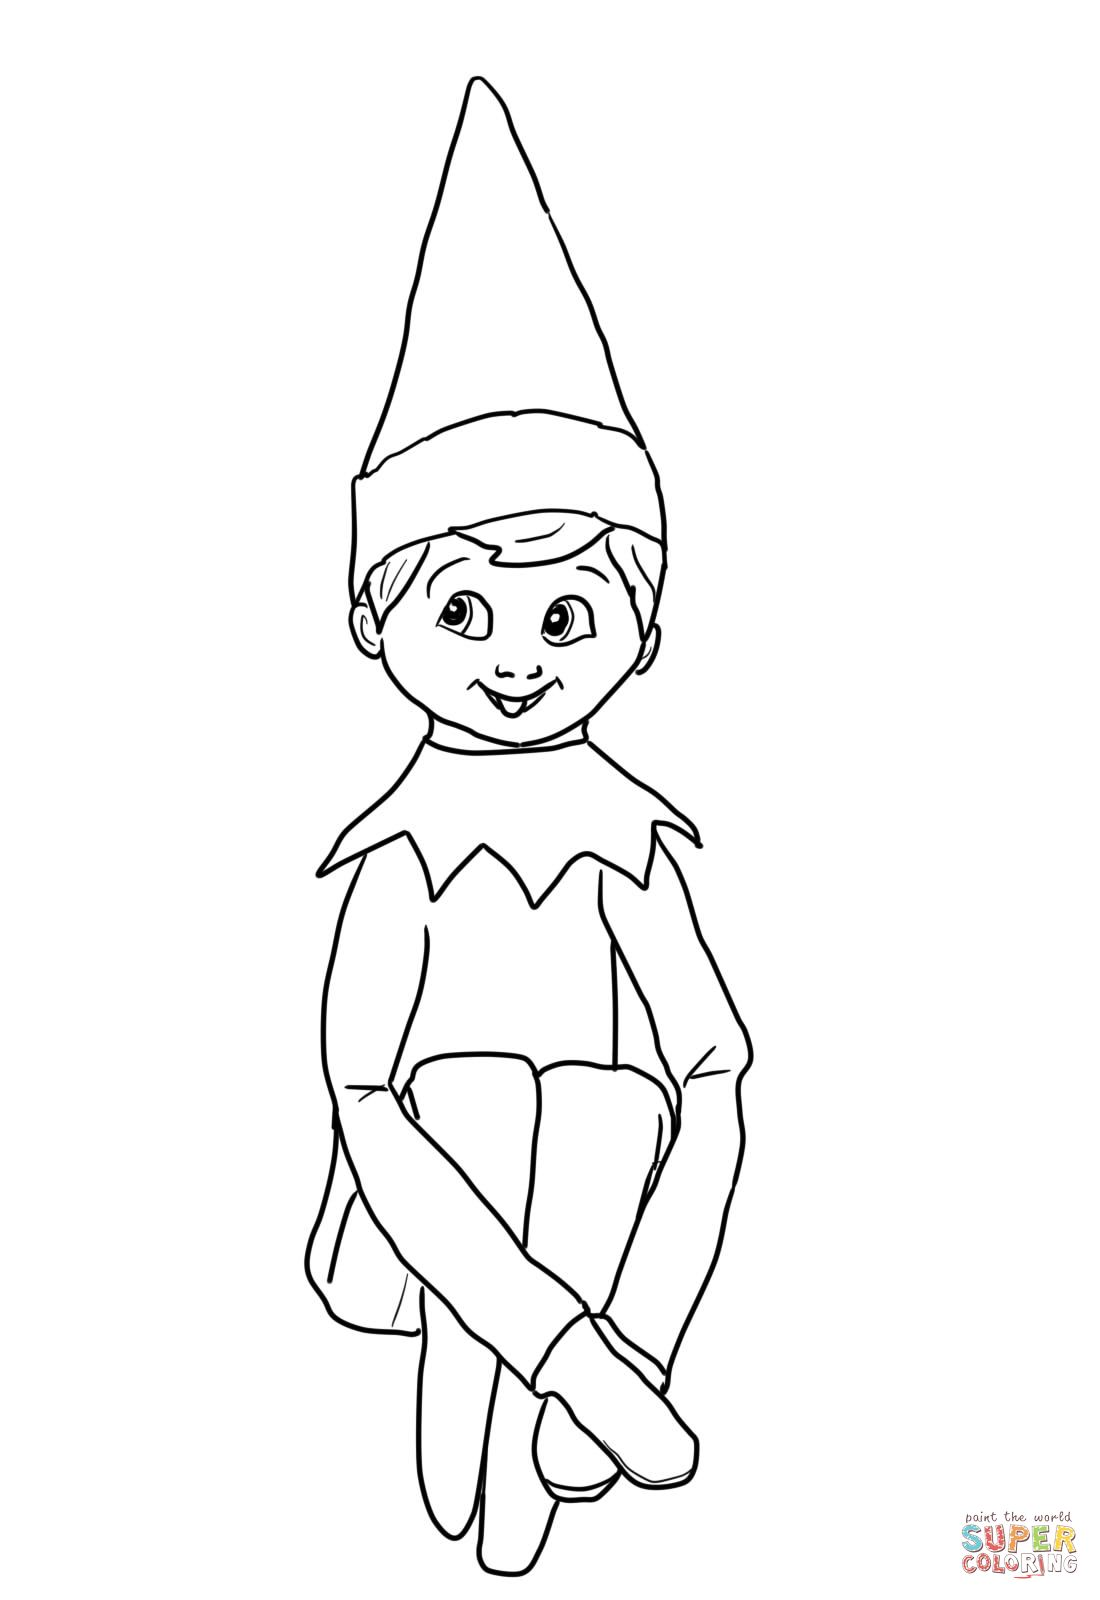 Coloring book pictures of elves - Christmas Elf On Shelf Coloring Page From Elf On The Shelf Category Select From 24629 Printable Crafts Of Cartoons Nature Animals Bible And Many More